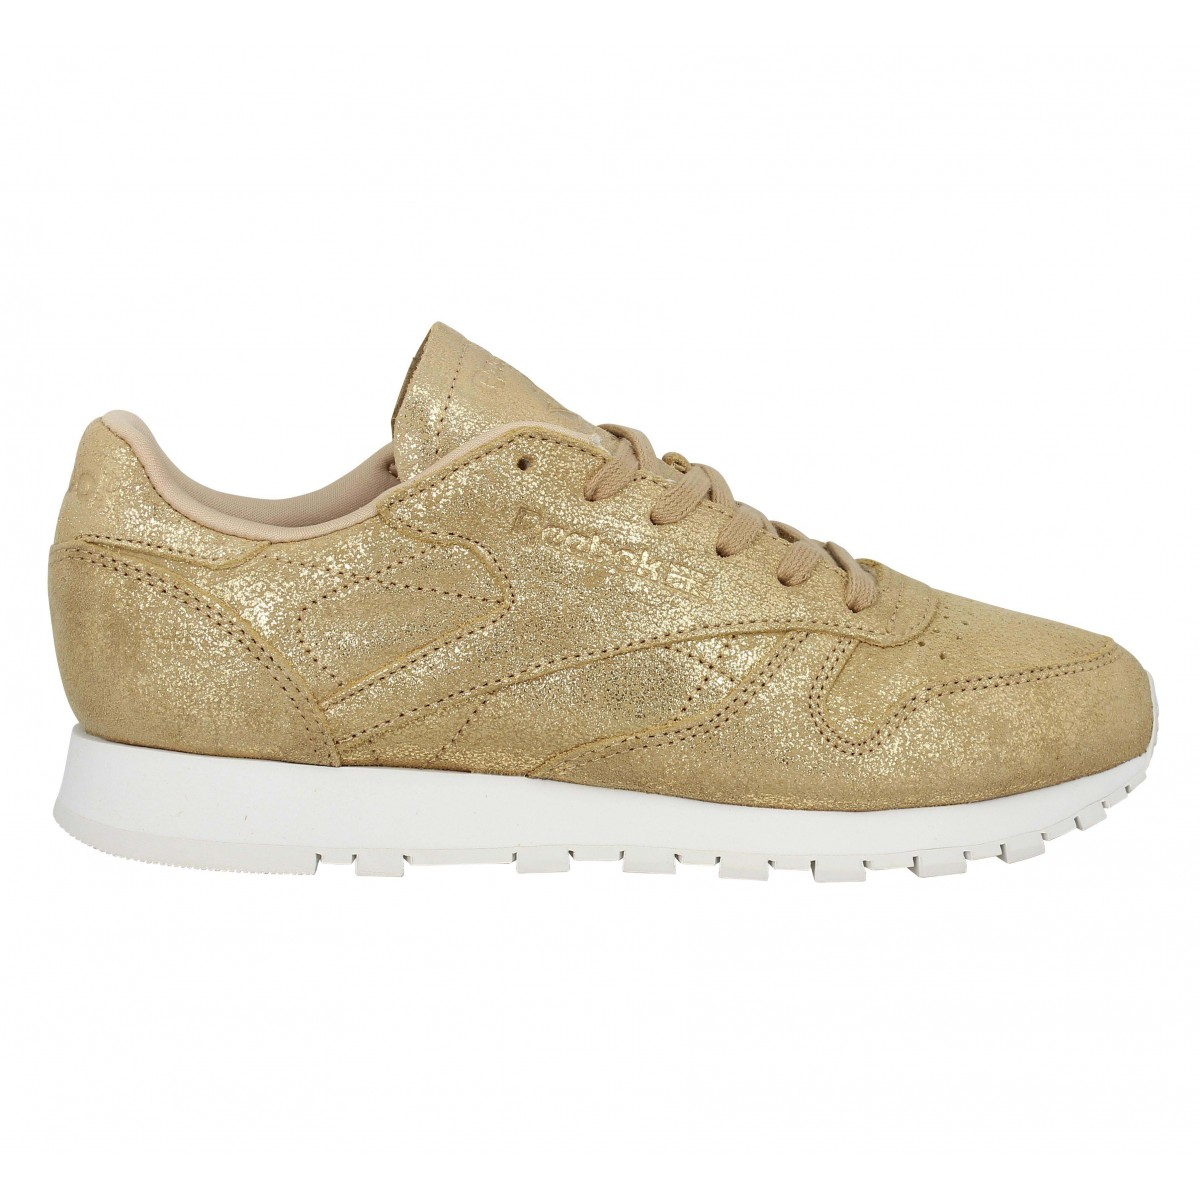 Chaussures Reebok classic leather shimmer velours femme gold